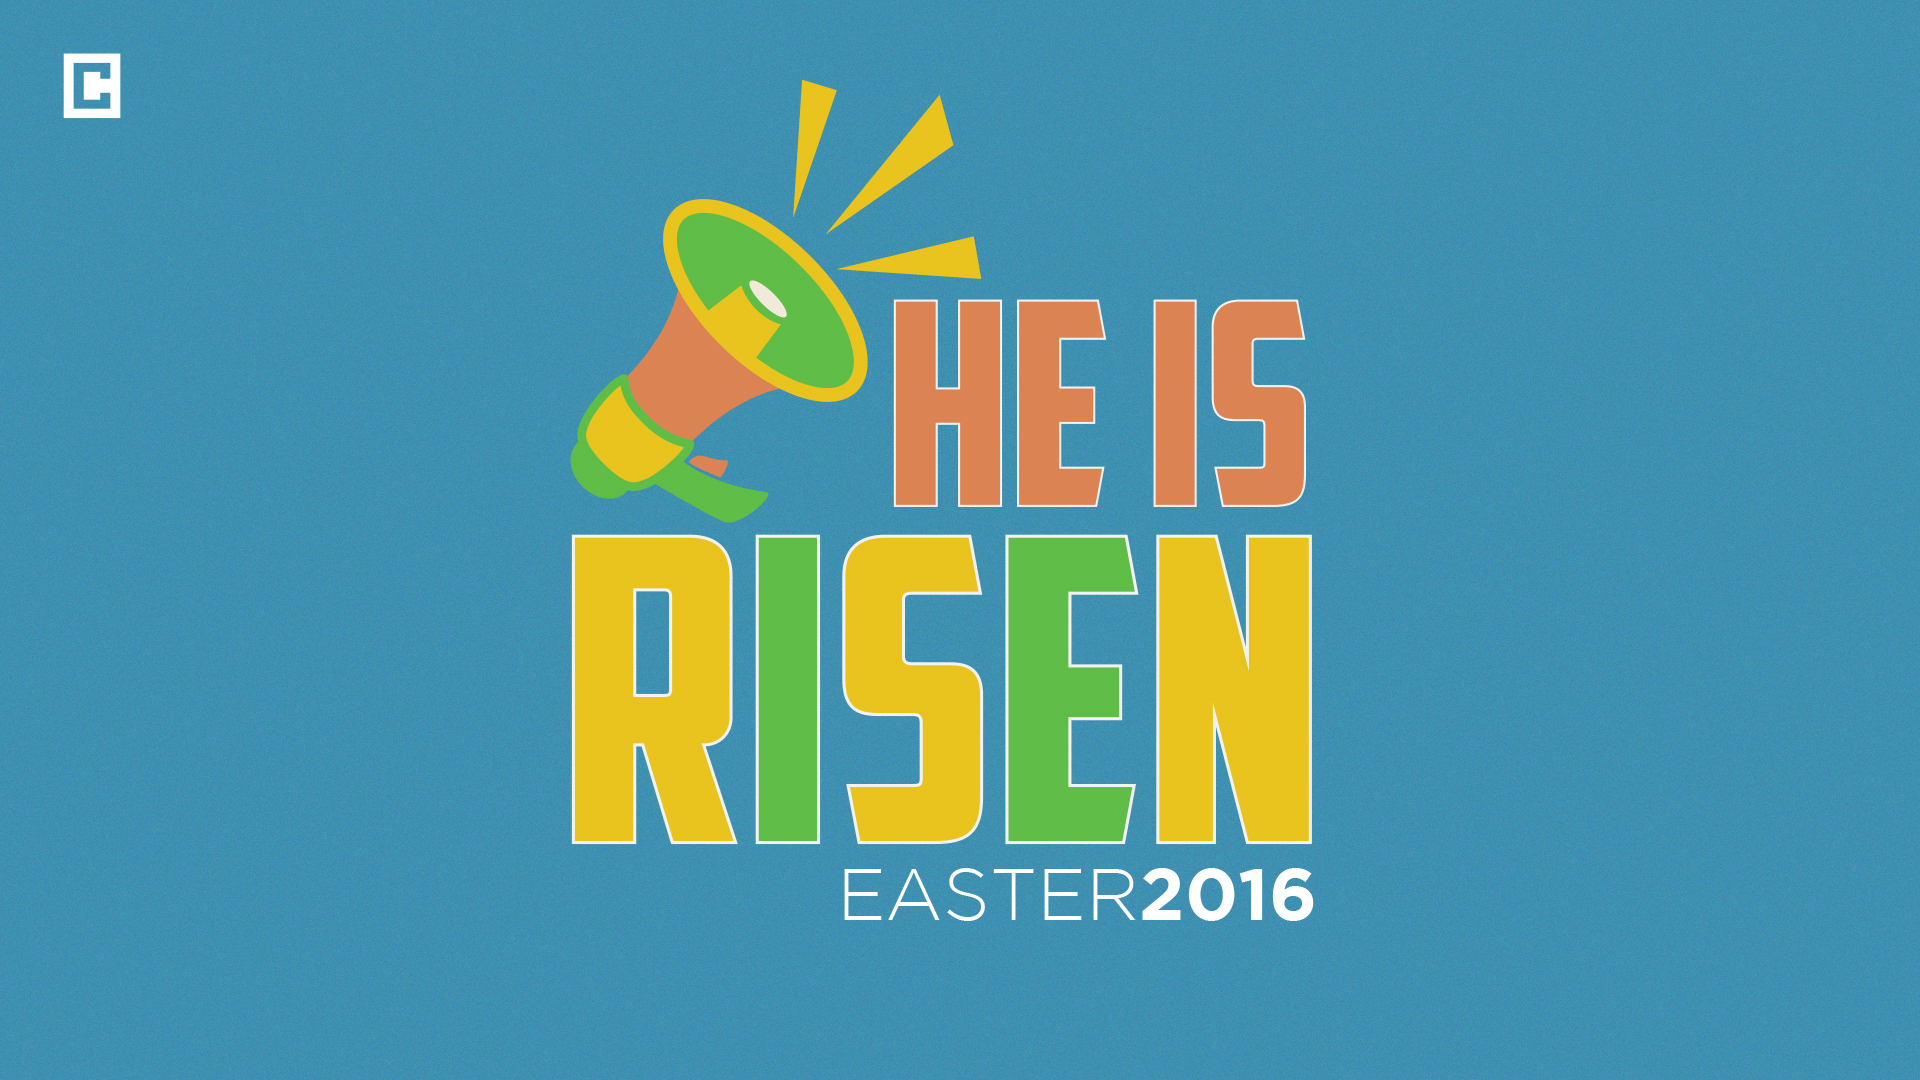 EASTER Sunday - March 27th - 8:30, 10:00, 11:30   Make plans to invite everyone you know to celebrate the resurrection of Jesus with us! We will have refreshments, an inflatable playground, baptisms and an awesome morning celebrating that Jesus is alive! We need everyone that calls Crossbridge their church family to do two things . . .  Serve at our services - sign-up  HERE !   Invite friends/family/enemies/neighbors/co-workers/trainers/baristas - okay EVERYBODY to join you at one of our services.      GOOD Friday SERVICE - March 25th - 7:00 PM    Join us for an evening of reflection on the crucifixion of Jesus. Childcare is available and recommended for infant-K. Register  HERE !